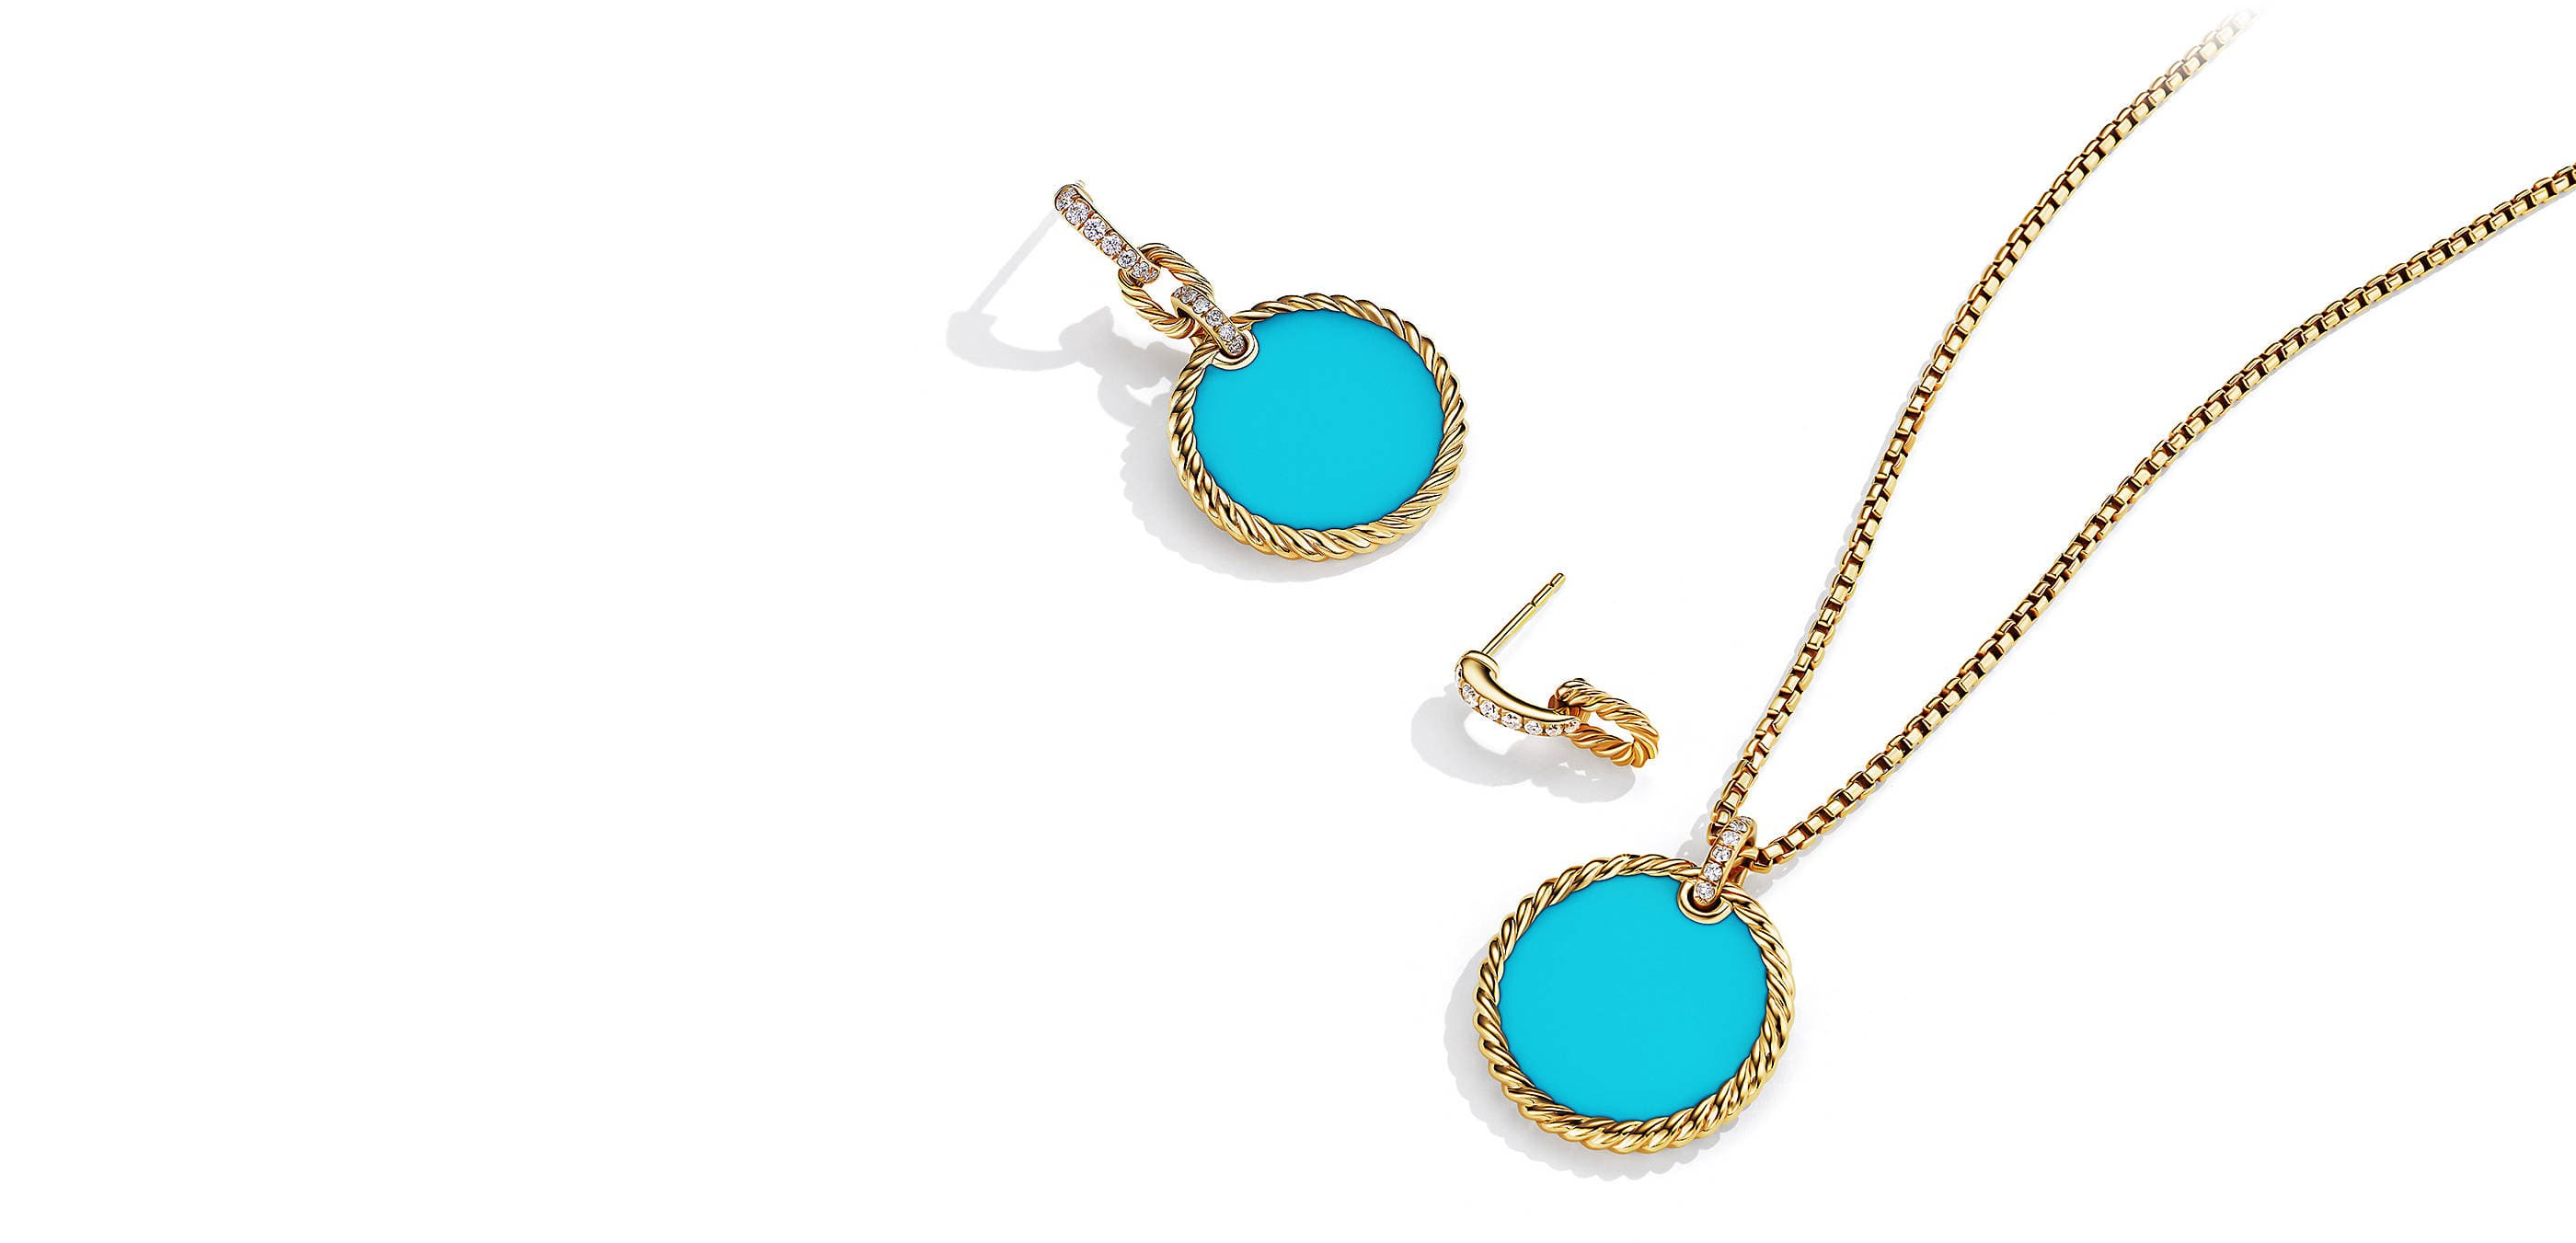 A color photo shows a DY Elements drop earring in 18K yellow gold with black onyx and pavé diamonds above the same earring with the gemstone drop removed on a white background. Below the second earring is a DY Elements circular turquoise pendant in 18K yellow gold strung on a sterling silver box chain.